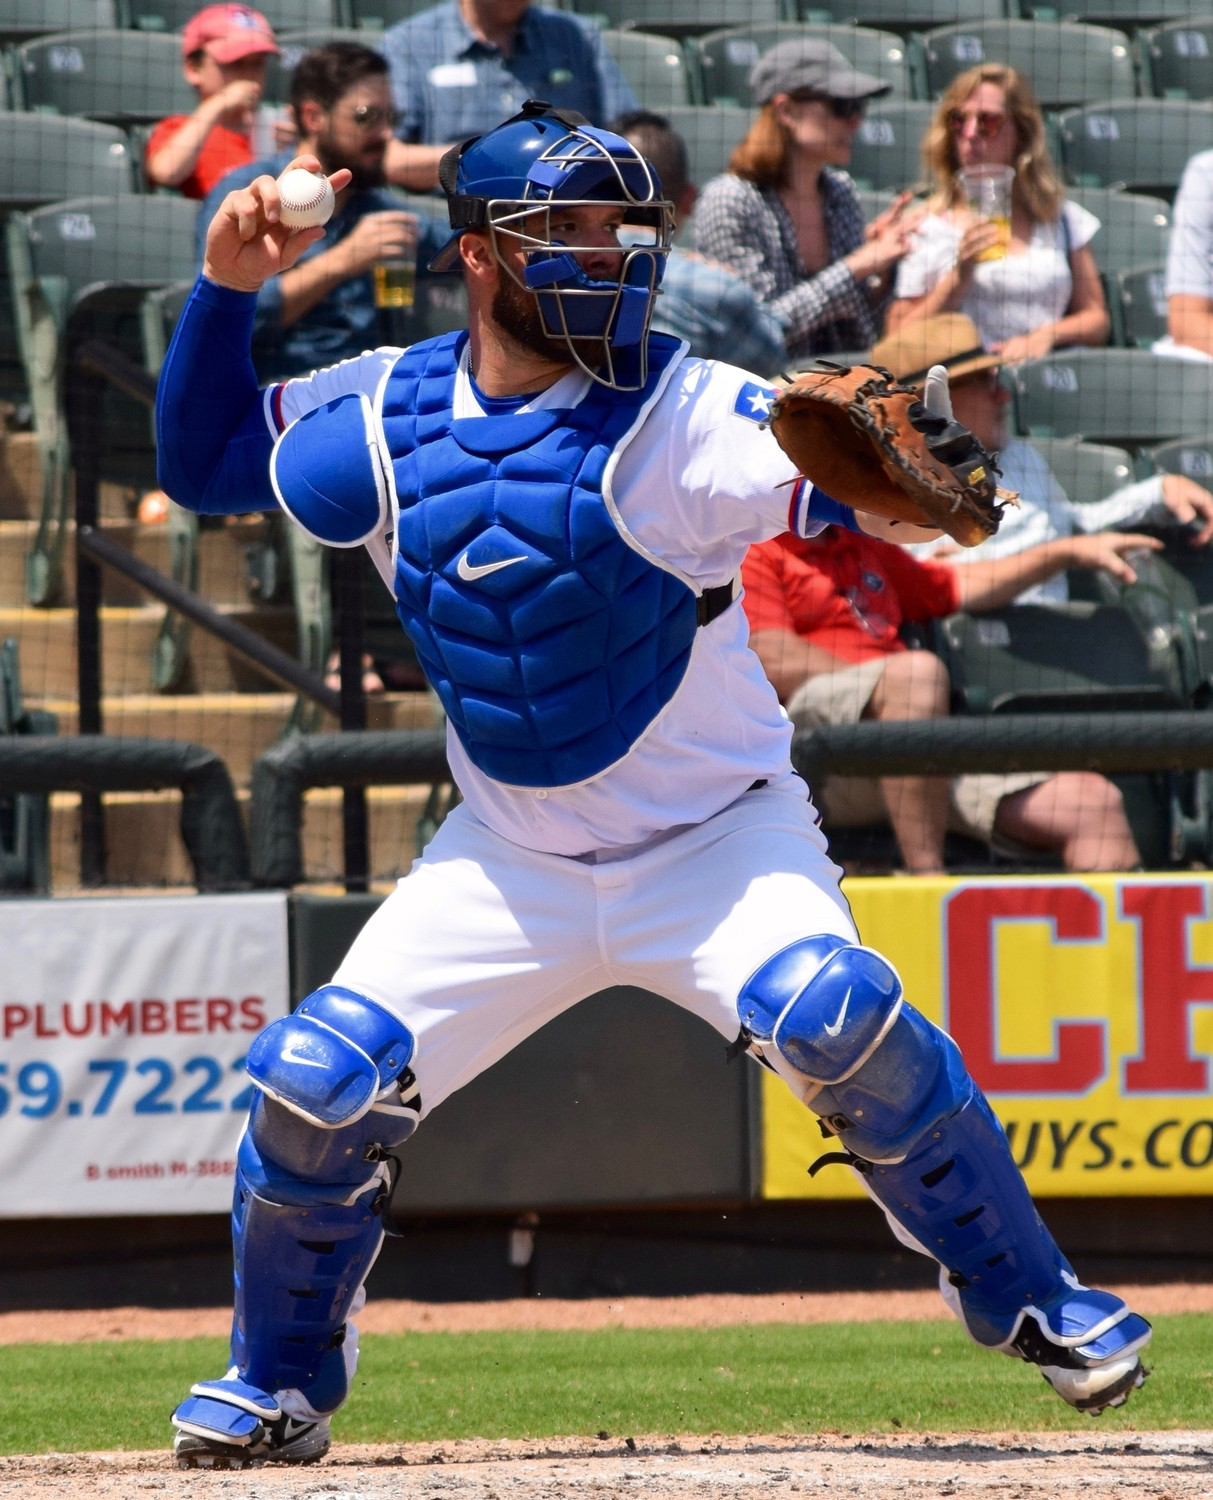 Cameron Rupp hit a walk-off grand slam Wednesday afternoon and the Round Rock Express beat the Oklahoma City Dodgers 9-6.